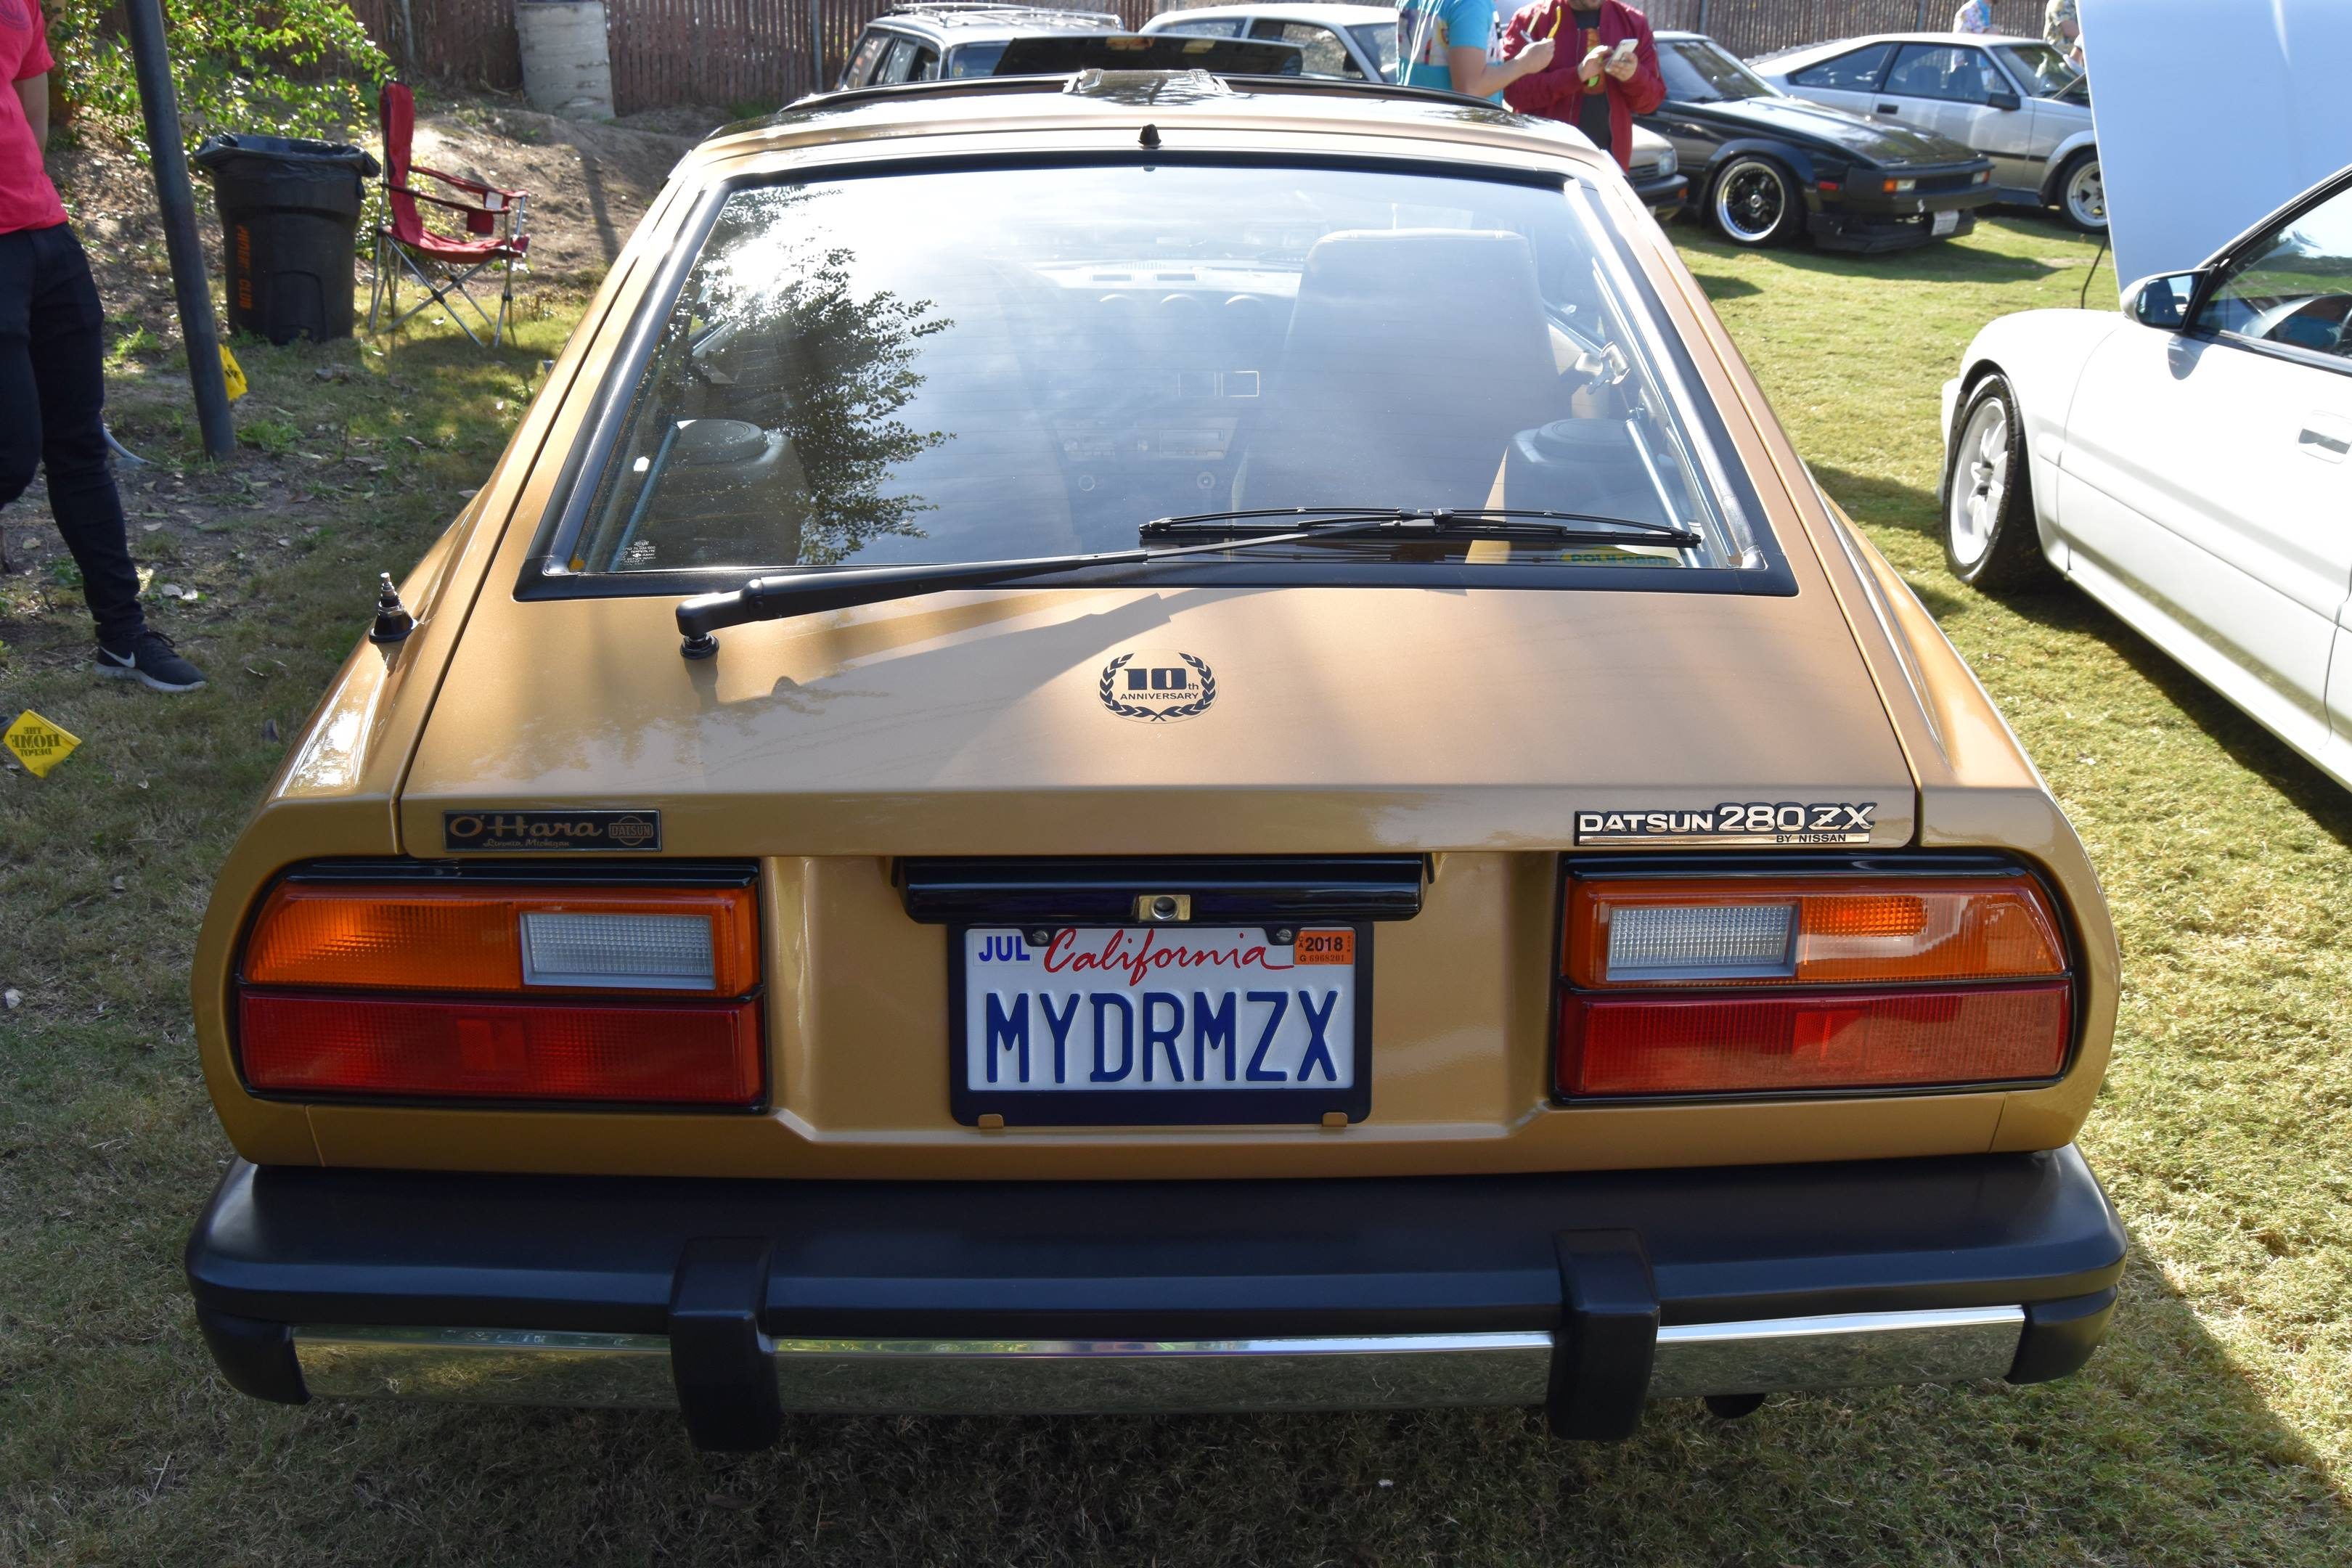 1980 Datsun 280ZX 10th Anniversary Edition rear